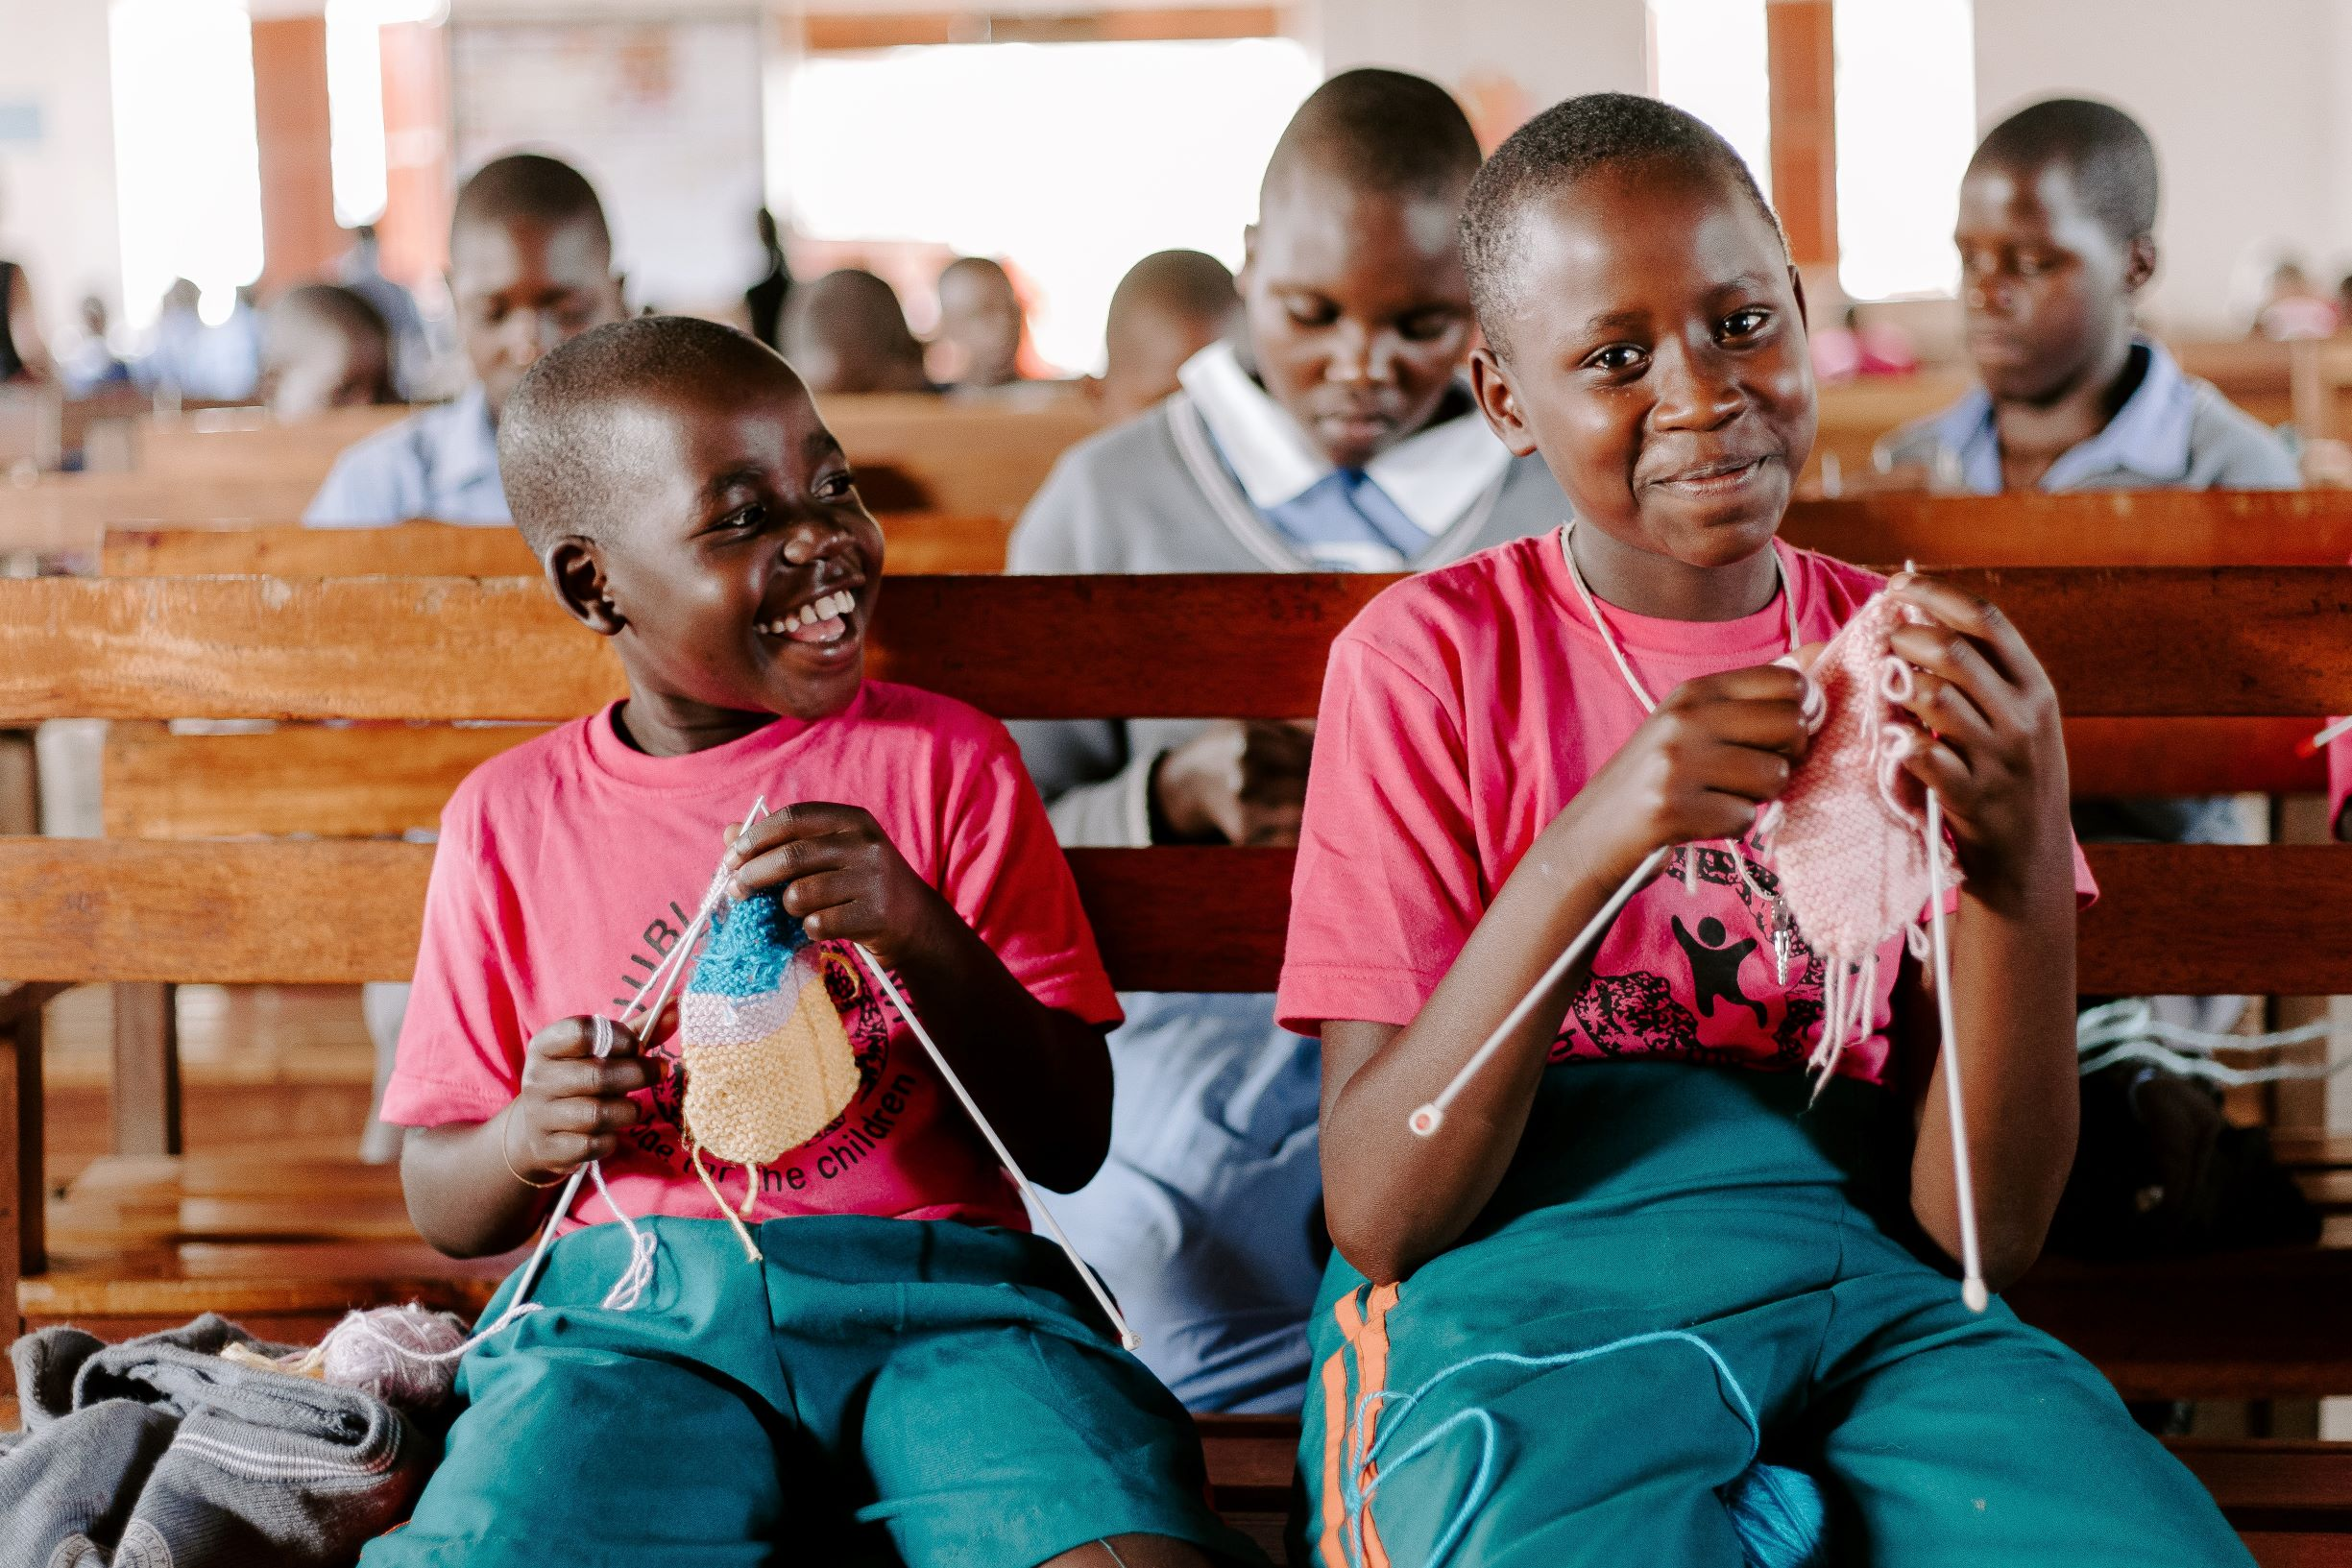 Two boys in matching shirts and shorts knit in a church in Uganda.